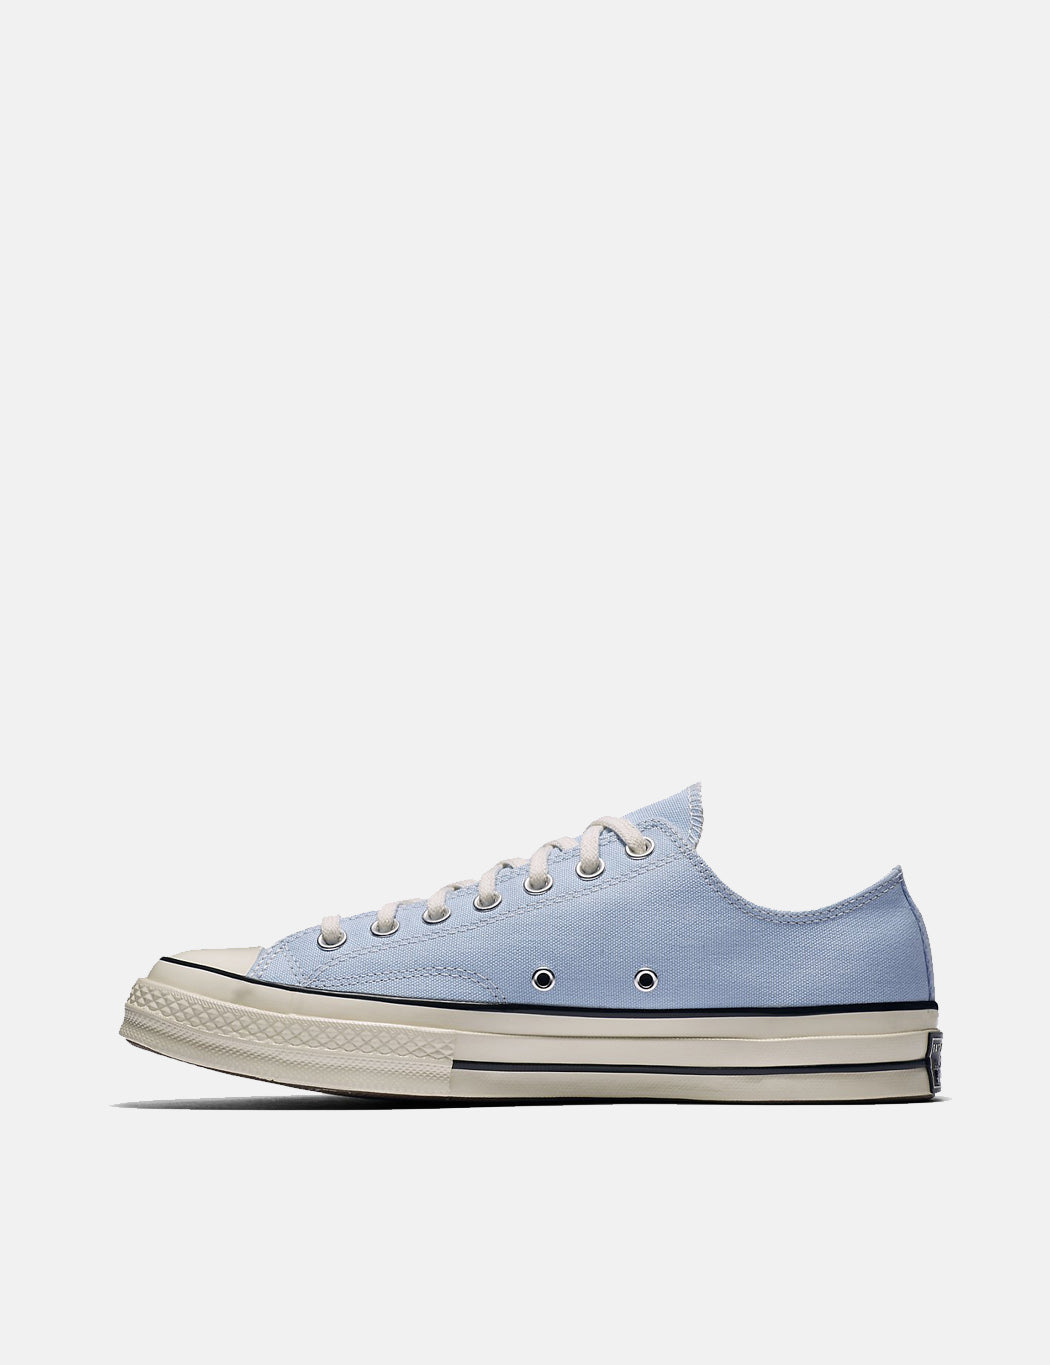 CONVERSE ALL STAR CHUCK TAYLOR 70s OX 159624C BLUE CHILL BLACK LABEL vinatge jap